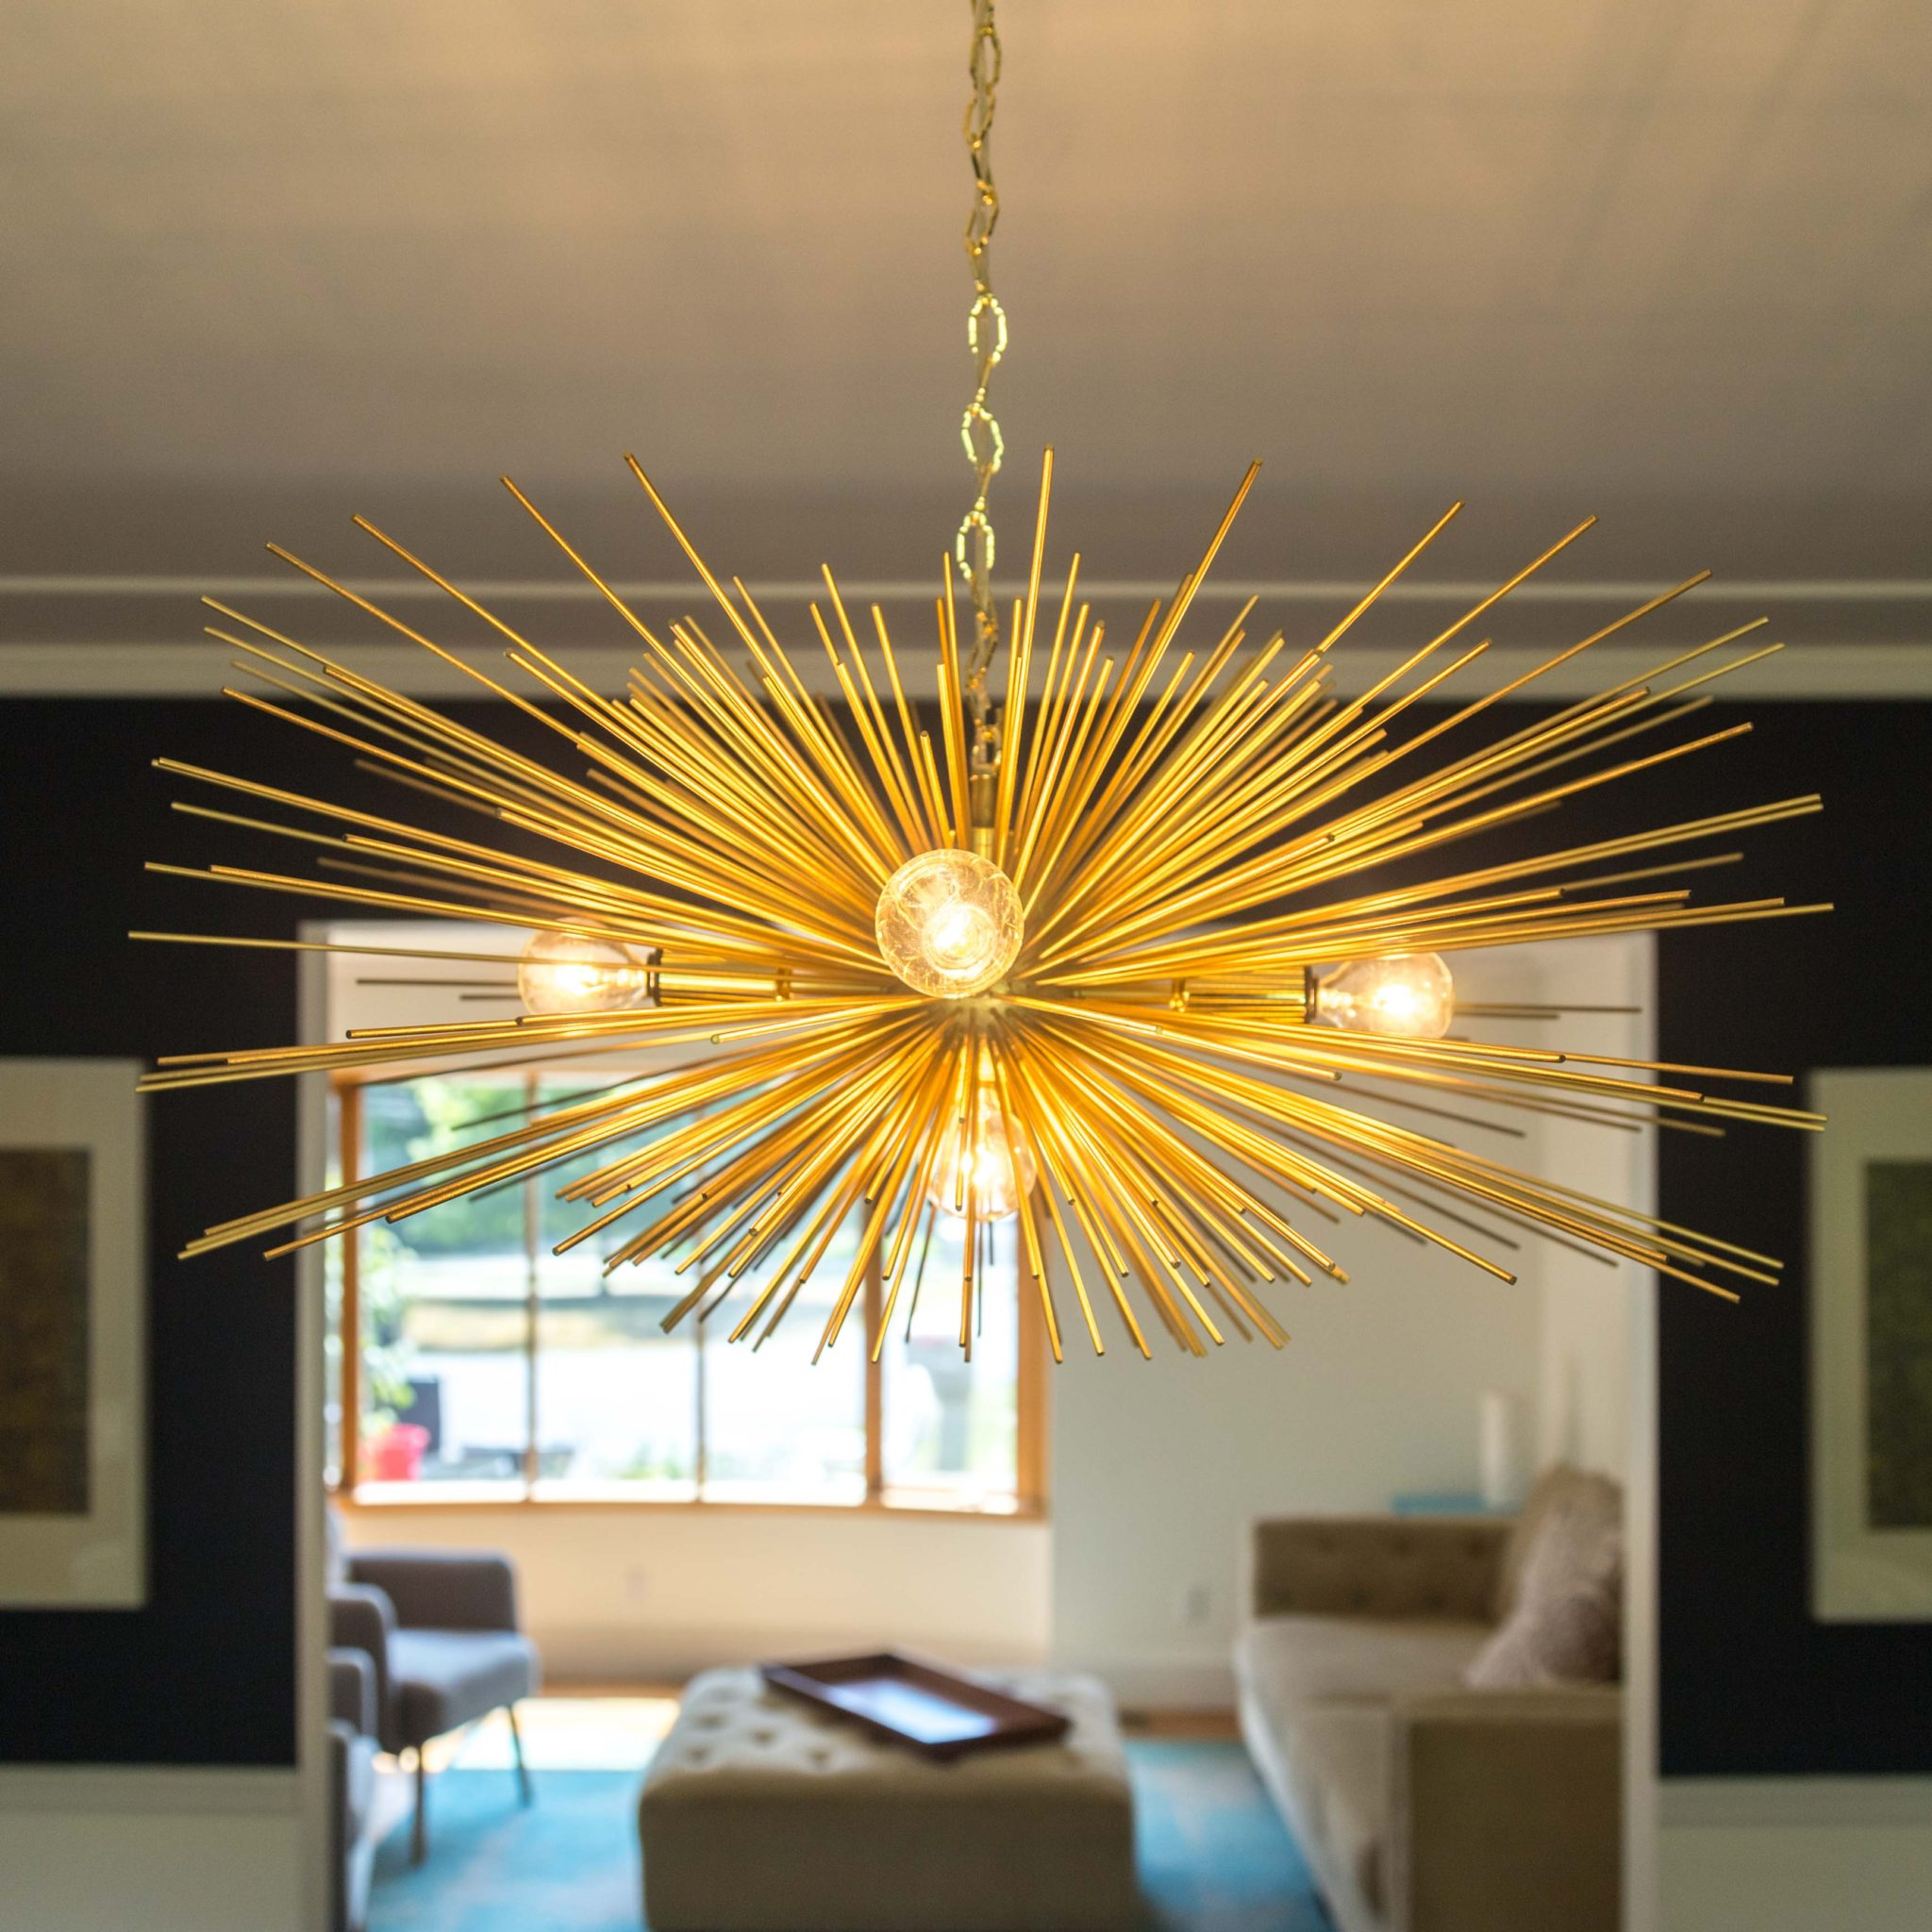 our new dining room on allweareblog.com | dining room light | gold light | brass light | chandelier